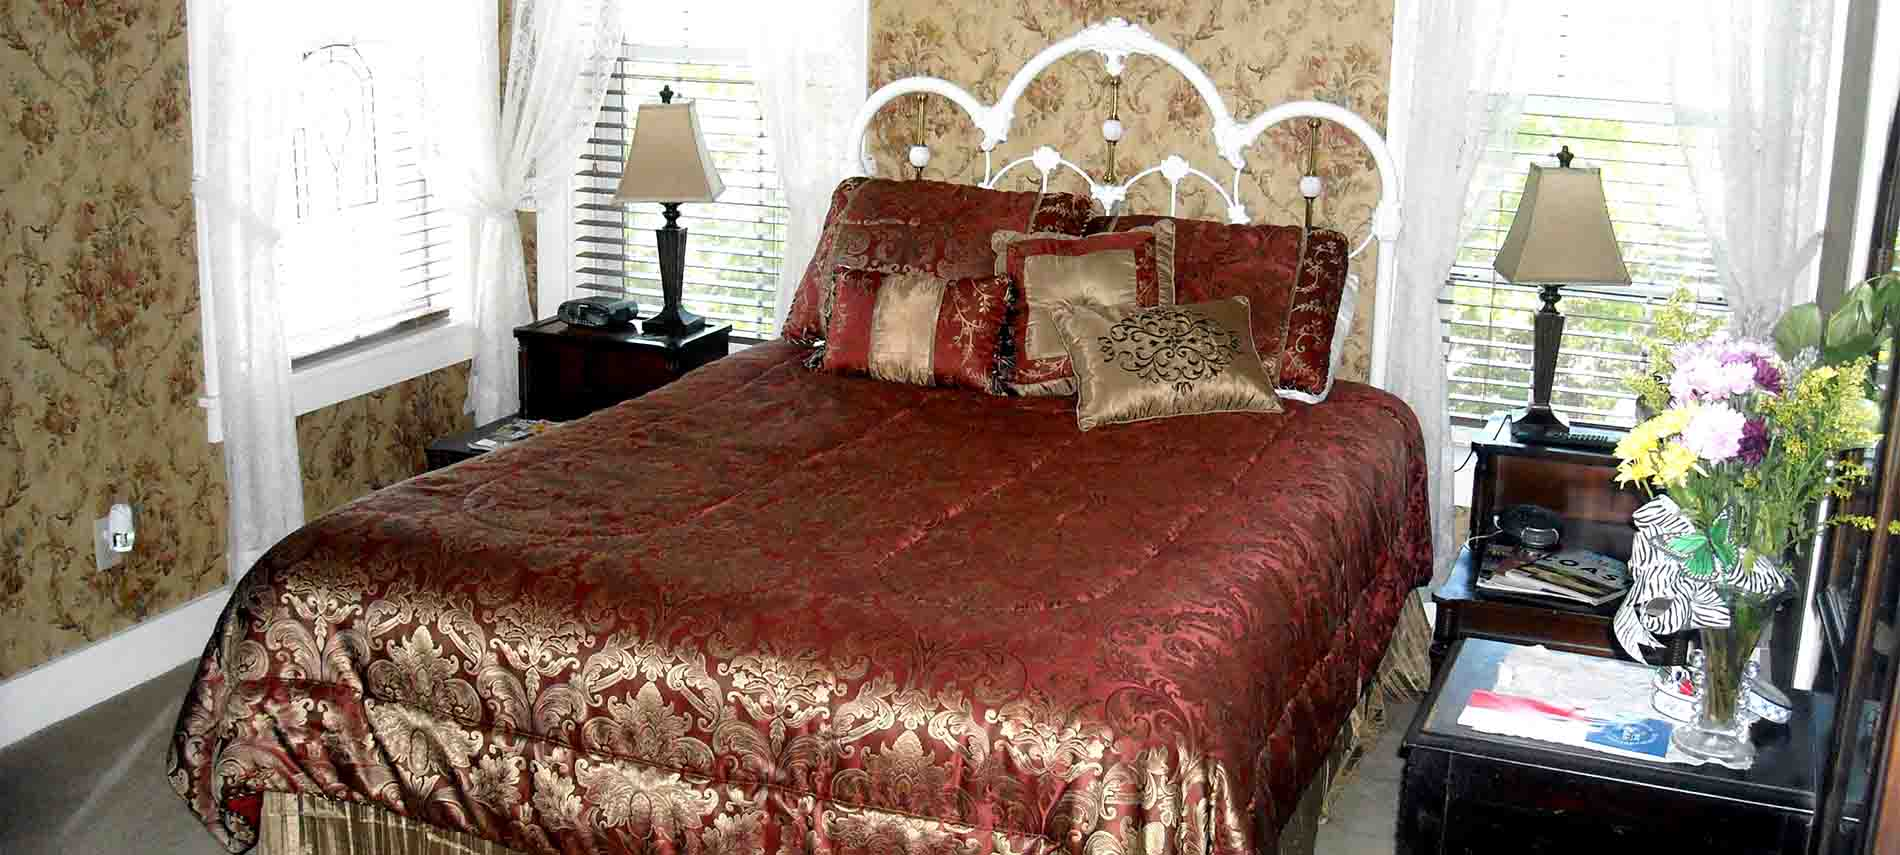 Bluebonnet Room with floral wallpaper, a white iron bed covered with a red and gold satin spread, and flanked by two nightstands and a vanity